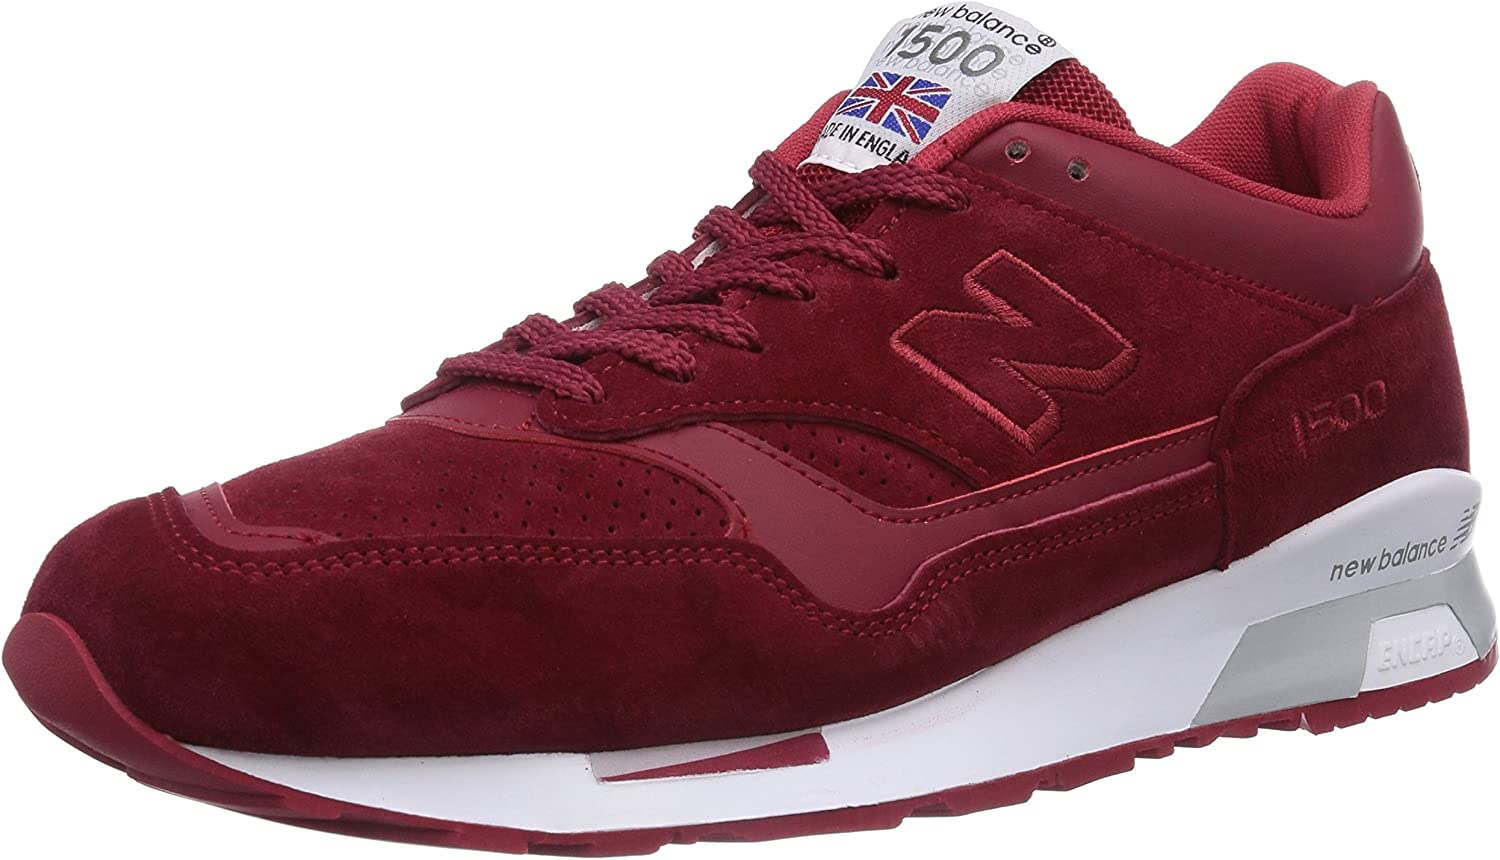 New Balance 1500, Baskets Basses Homme, Rouge (Red), 44.5 EU ...